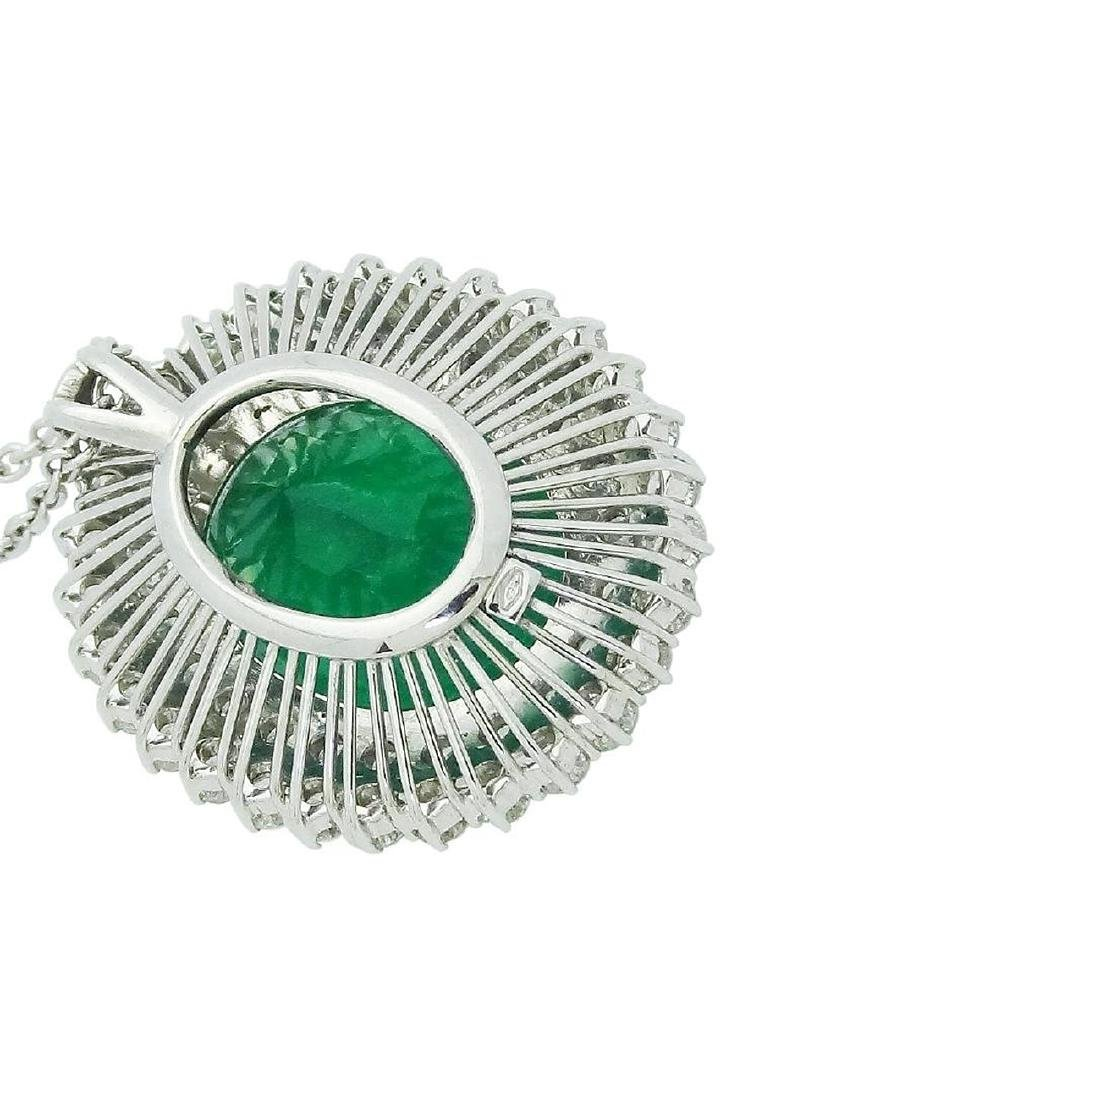 18K White Gold over 21 Ct Emerald and Diamond Necklace - 3